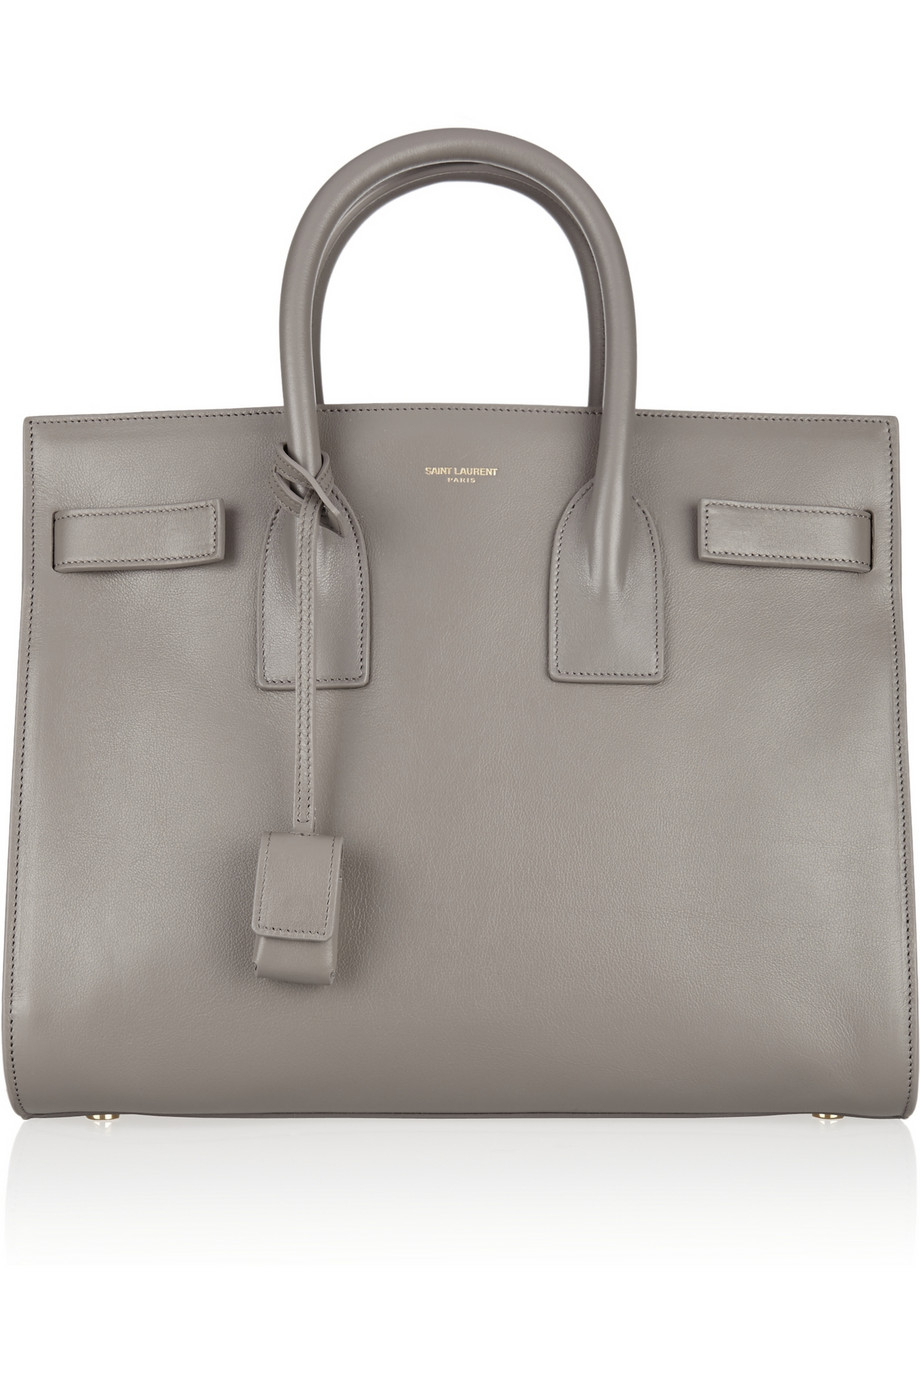 lyst saint laurent sac de jour small leather tote in gray. Black Bedroom Furniture Sets. Home Design Ideas